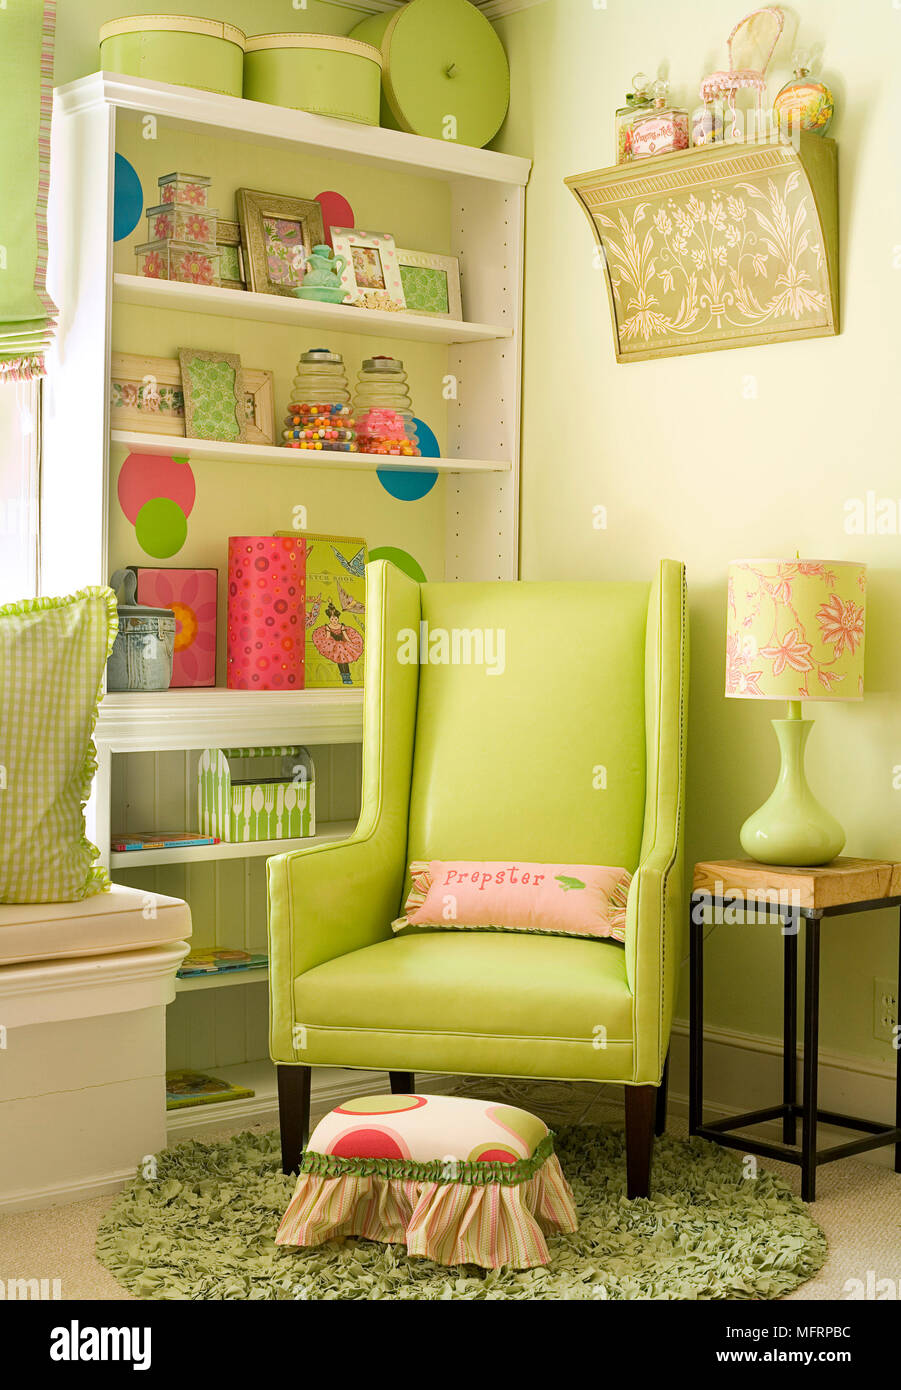 Upholstered Lime Green Chair In Corner Of Bedroom Stock